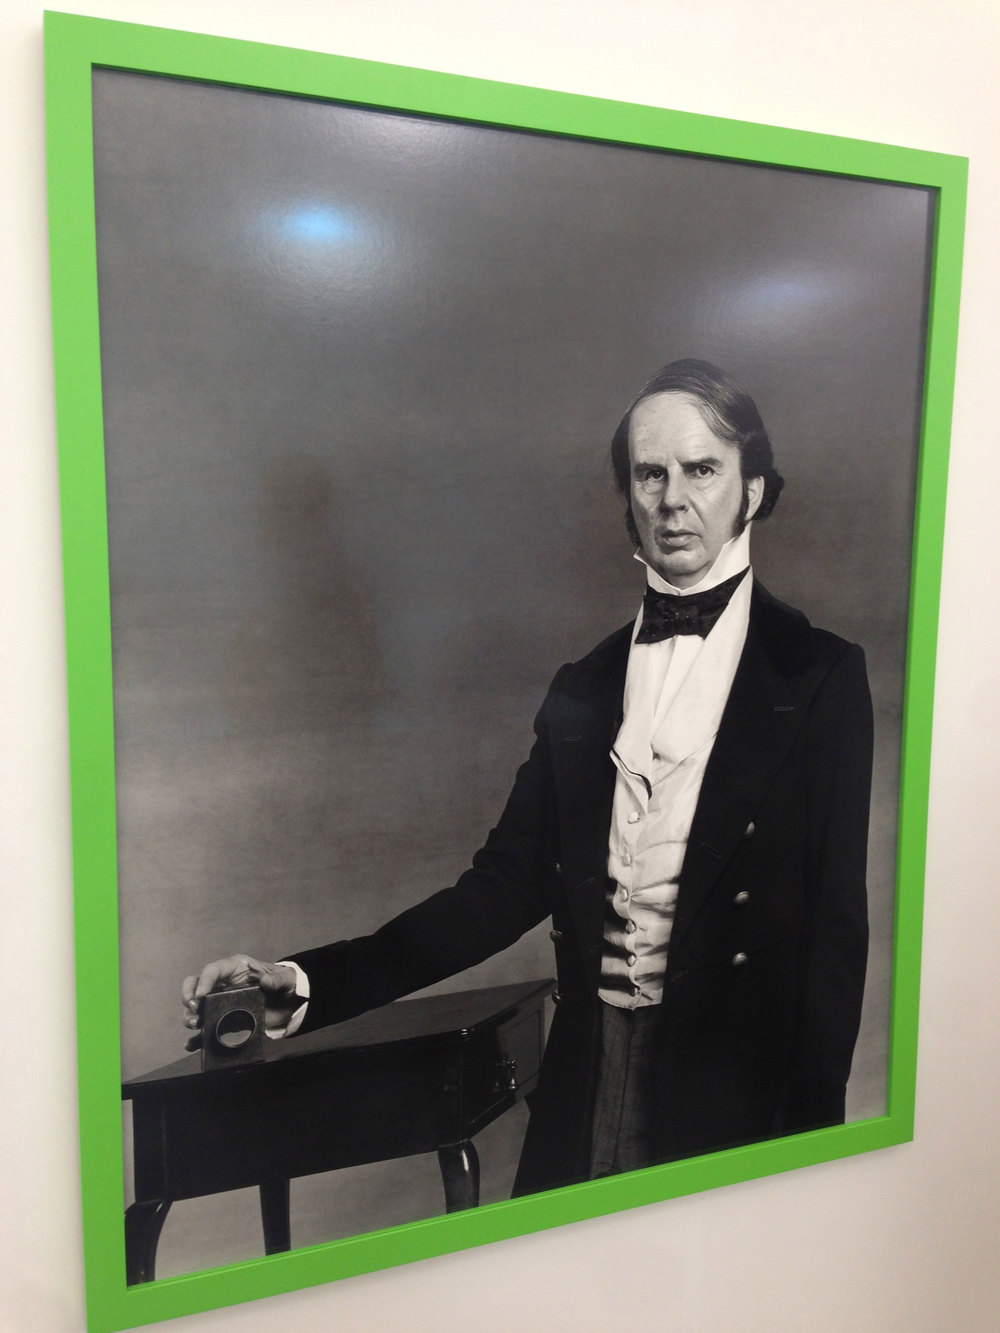 A very nice example of image-as-conceptual-object from Gillian Wearing posing as WIlliam Fox Talbot, inventor of the camera. Not sure about the green frame – was IKEA closed?